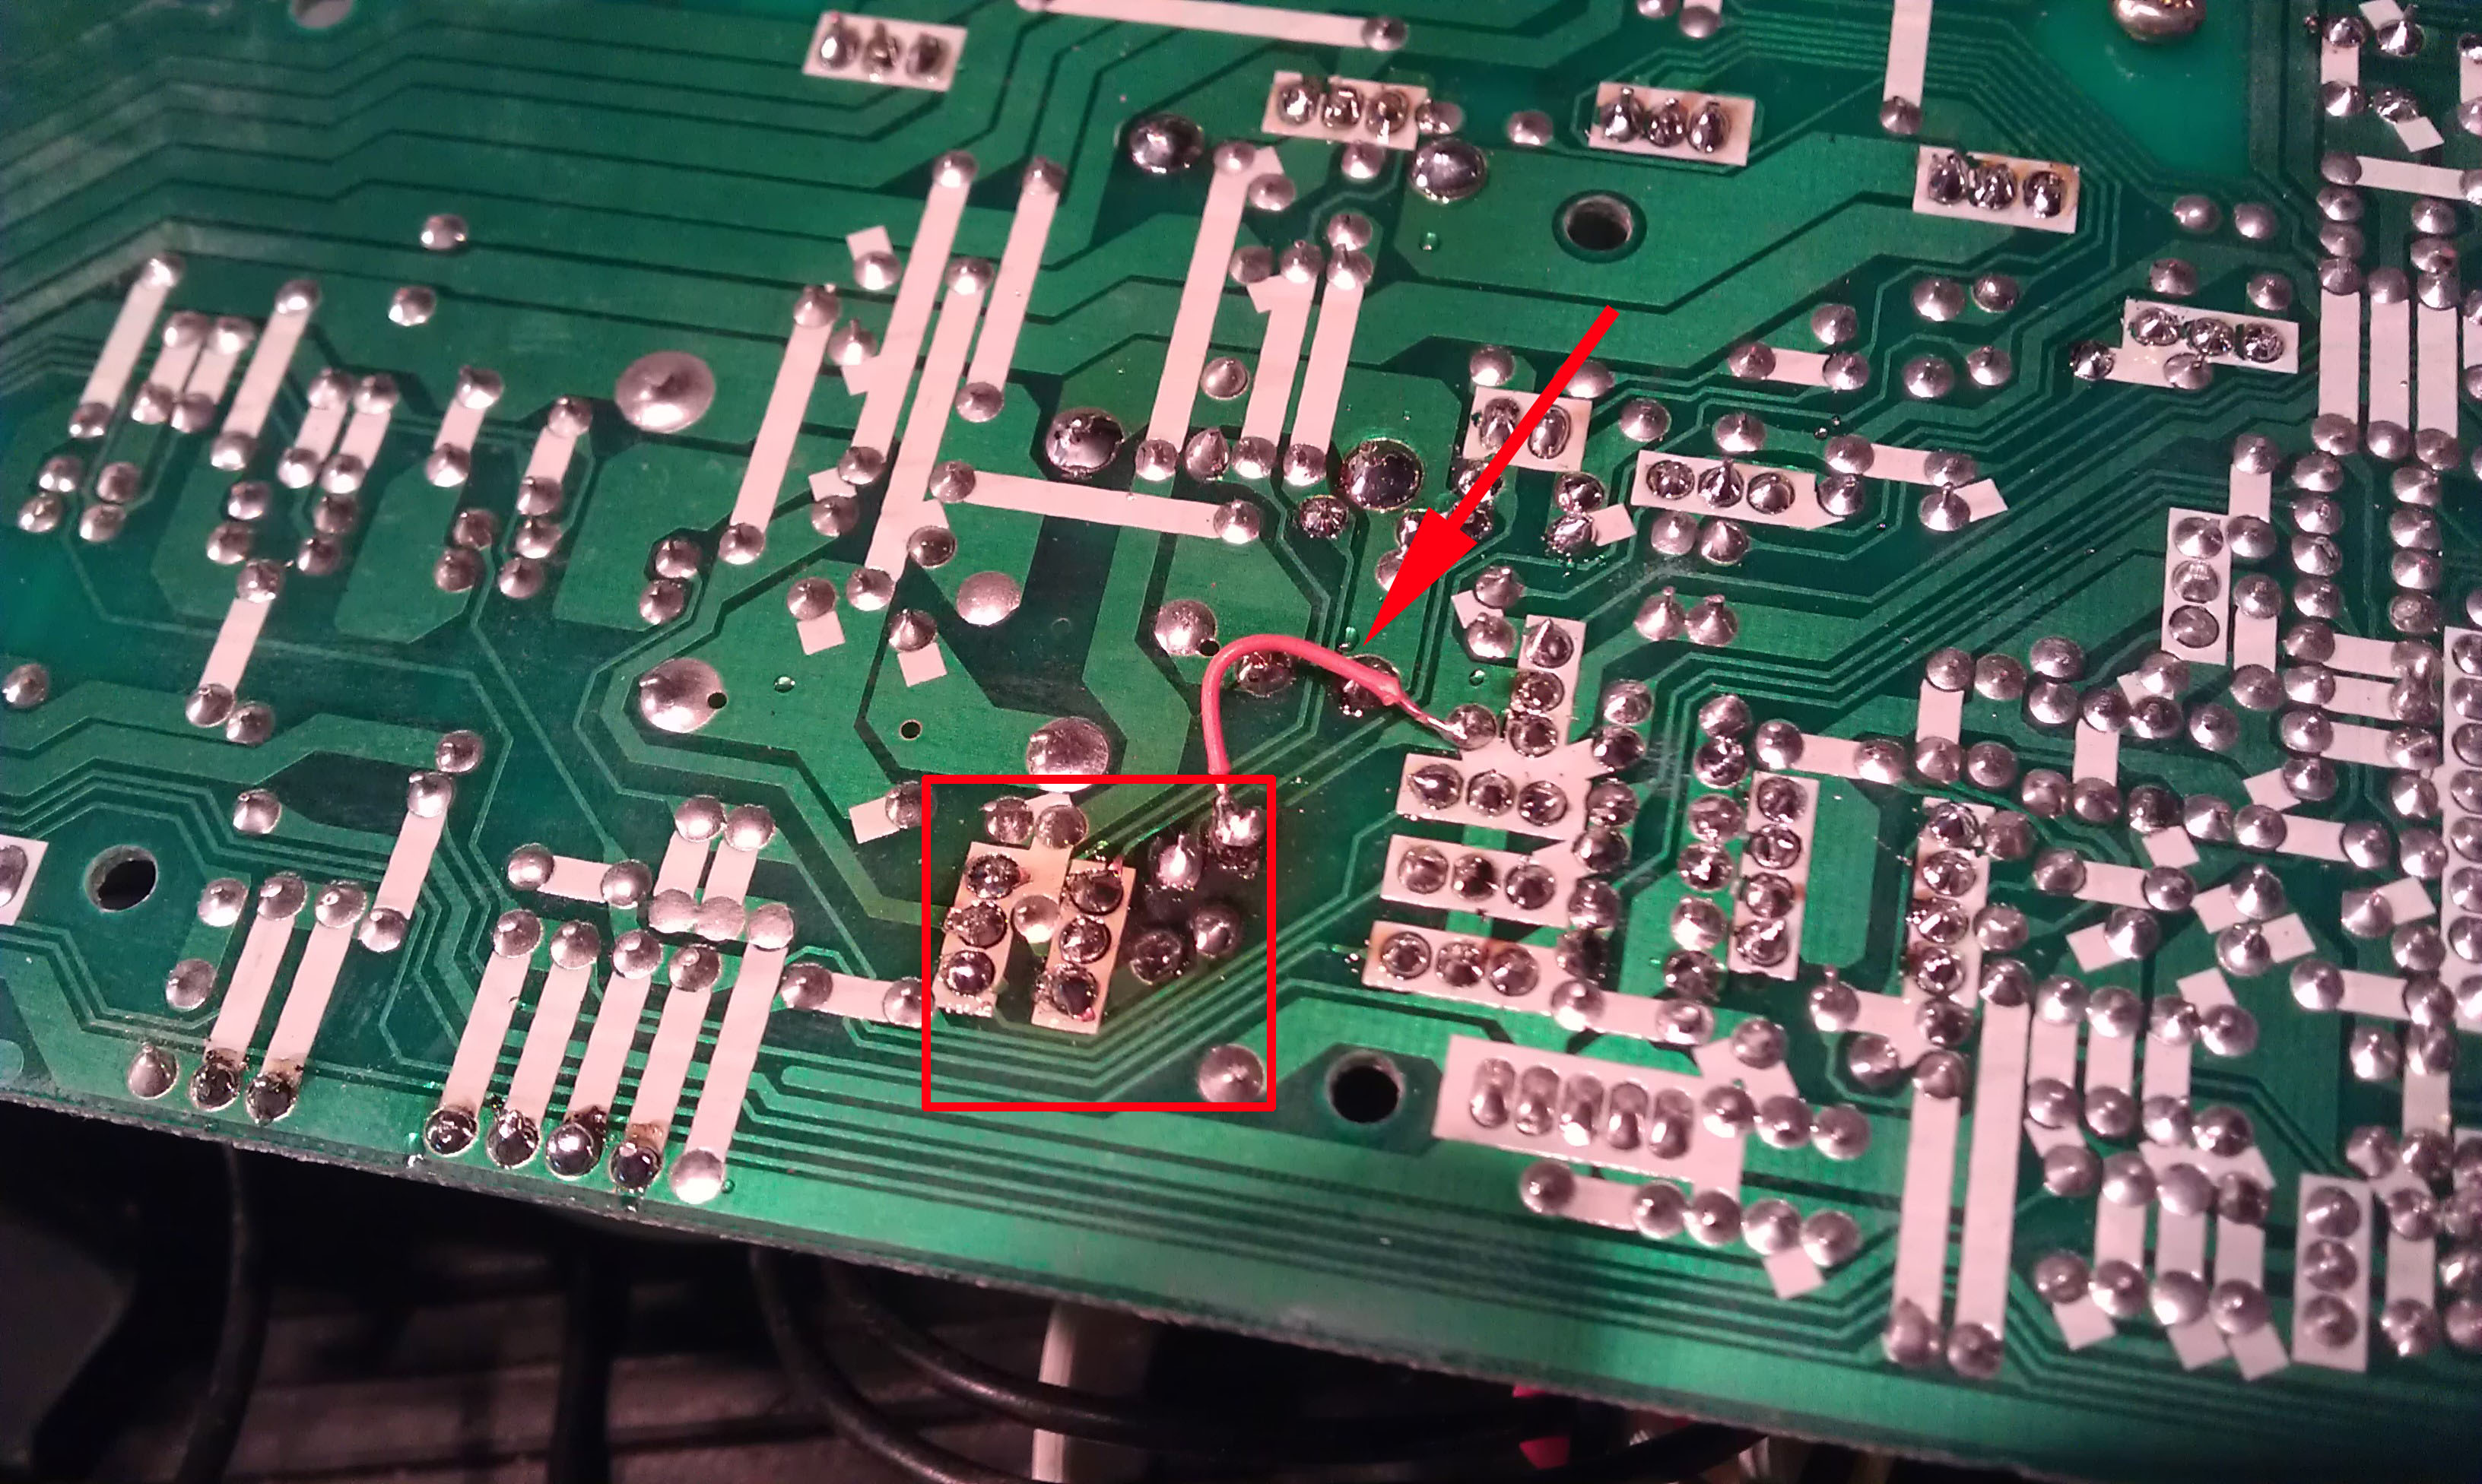 nutone im3303 heat damaged traces with box and arrow_edited 1?__SQUARESPACE_CACHEVERSION=1360438332260 your site name ima3303 common problems with the nutone im nutone ima3303 wiring diagram at readyjetset.co